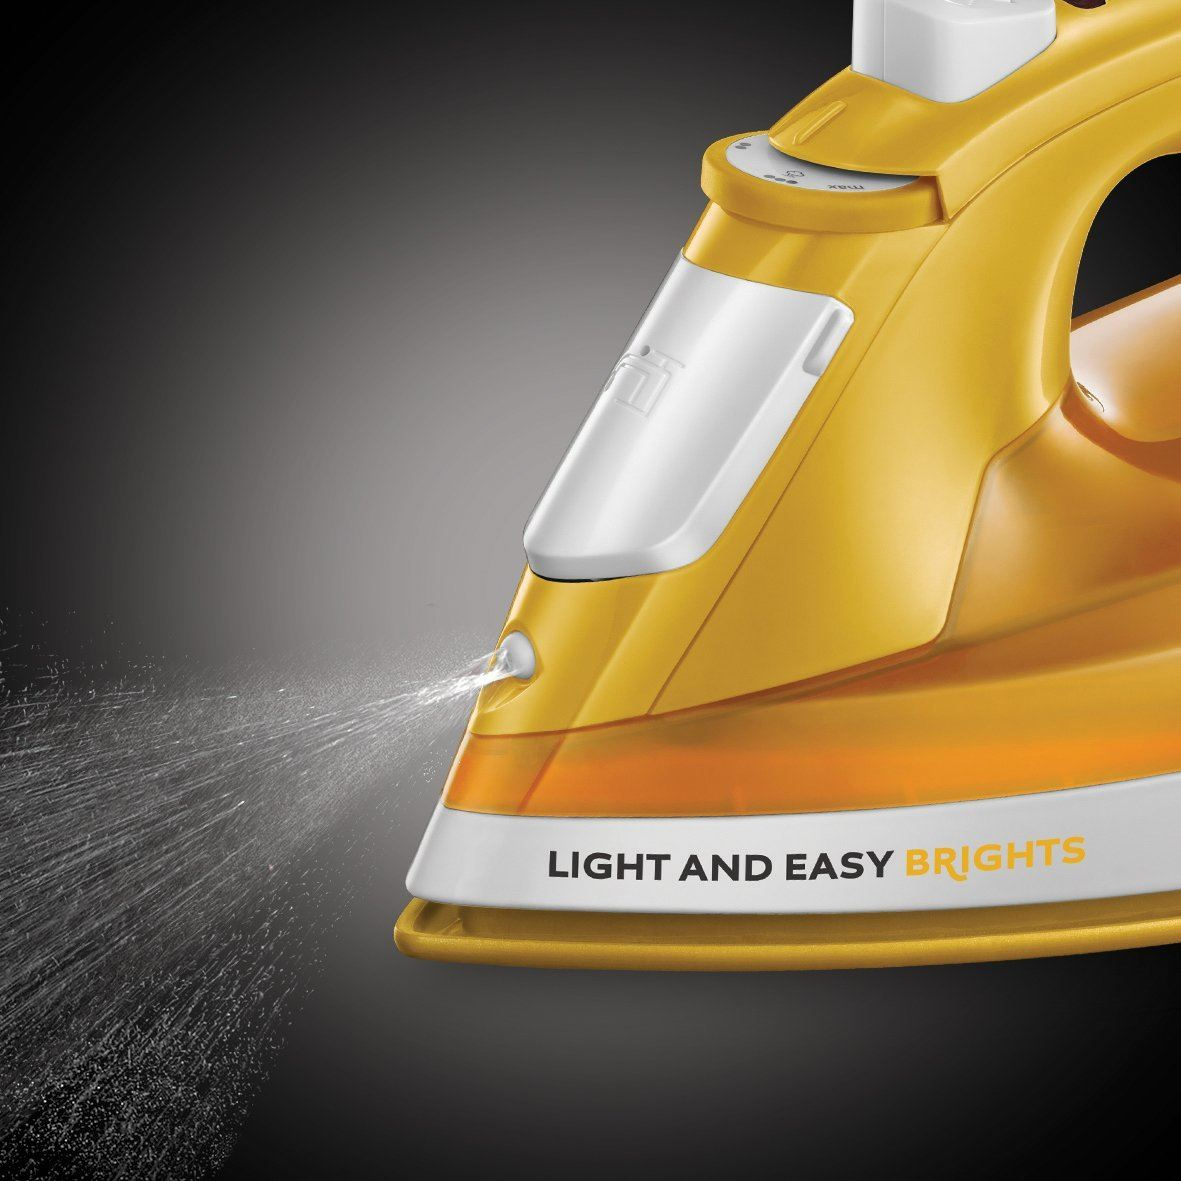 Russell-Hobbs-24840-Light-amp-Easy-Brights-Steam-Iron-with-Ceramic-Soleplate-2400W thumbnail 15